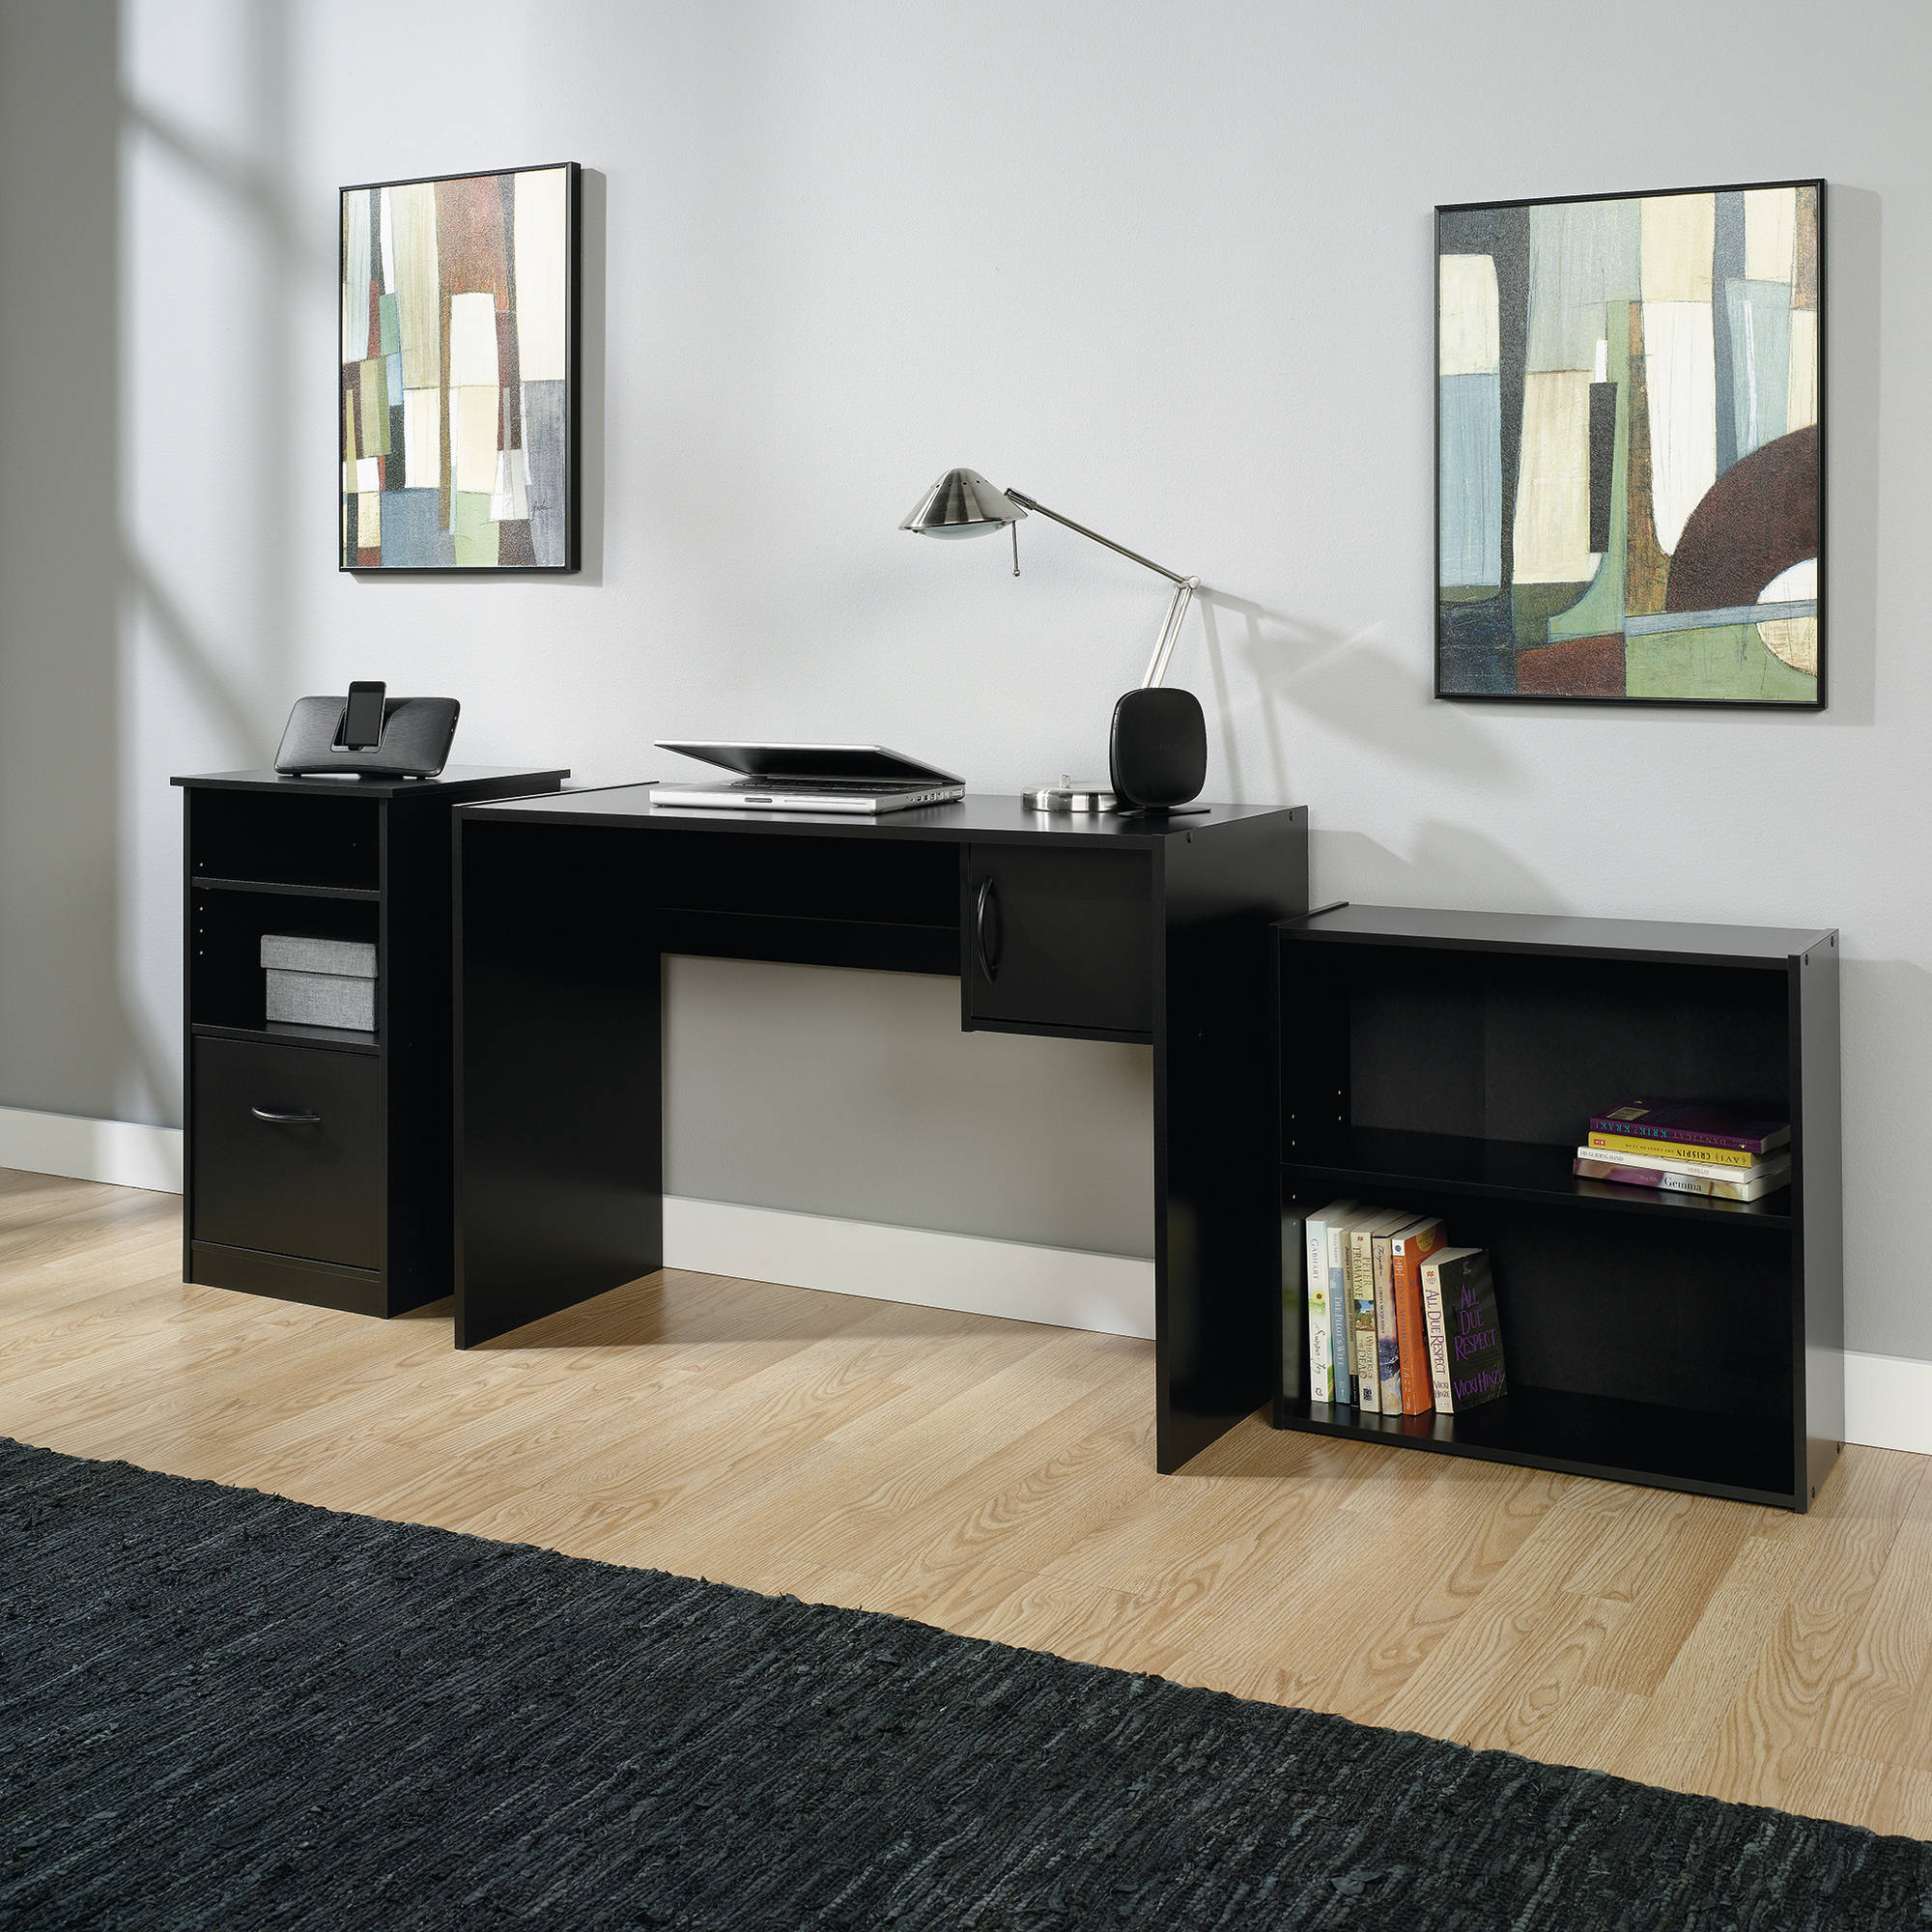 mainstays 3 piece office set black walmartcom - Home Office Desk Design